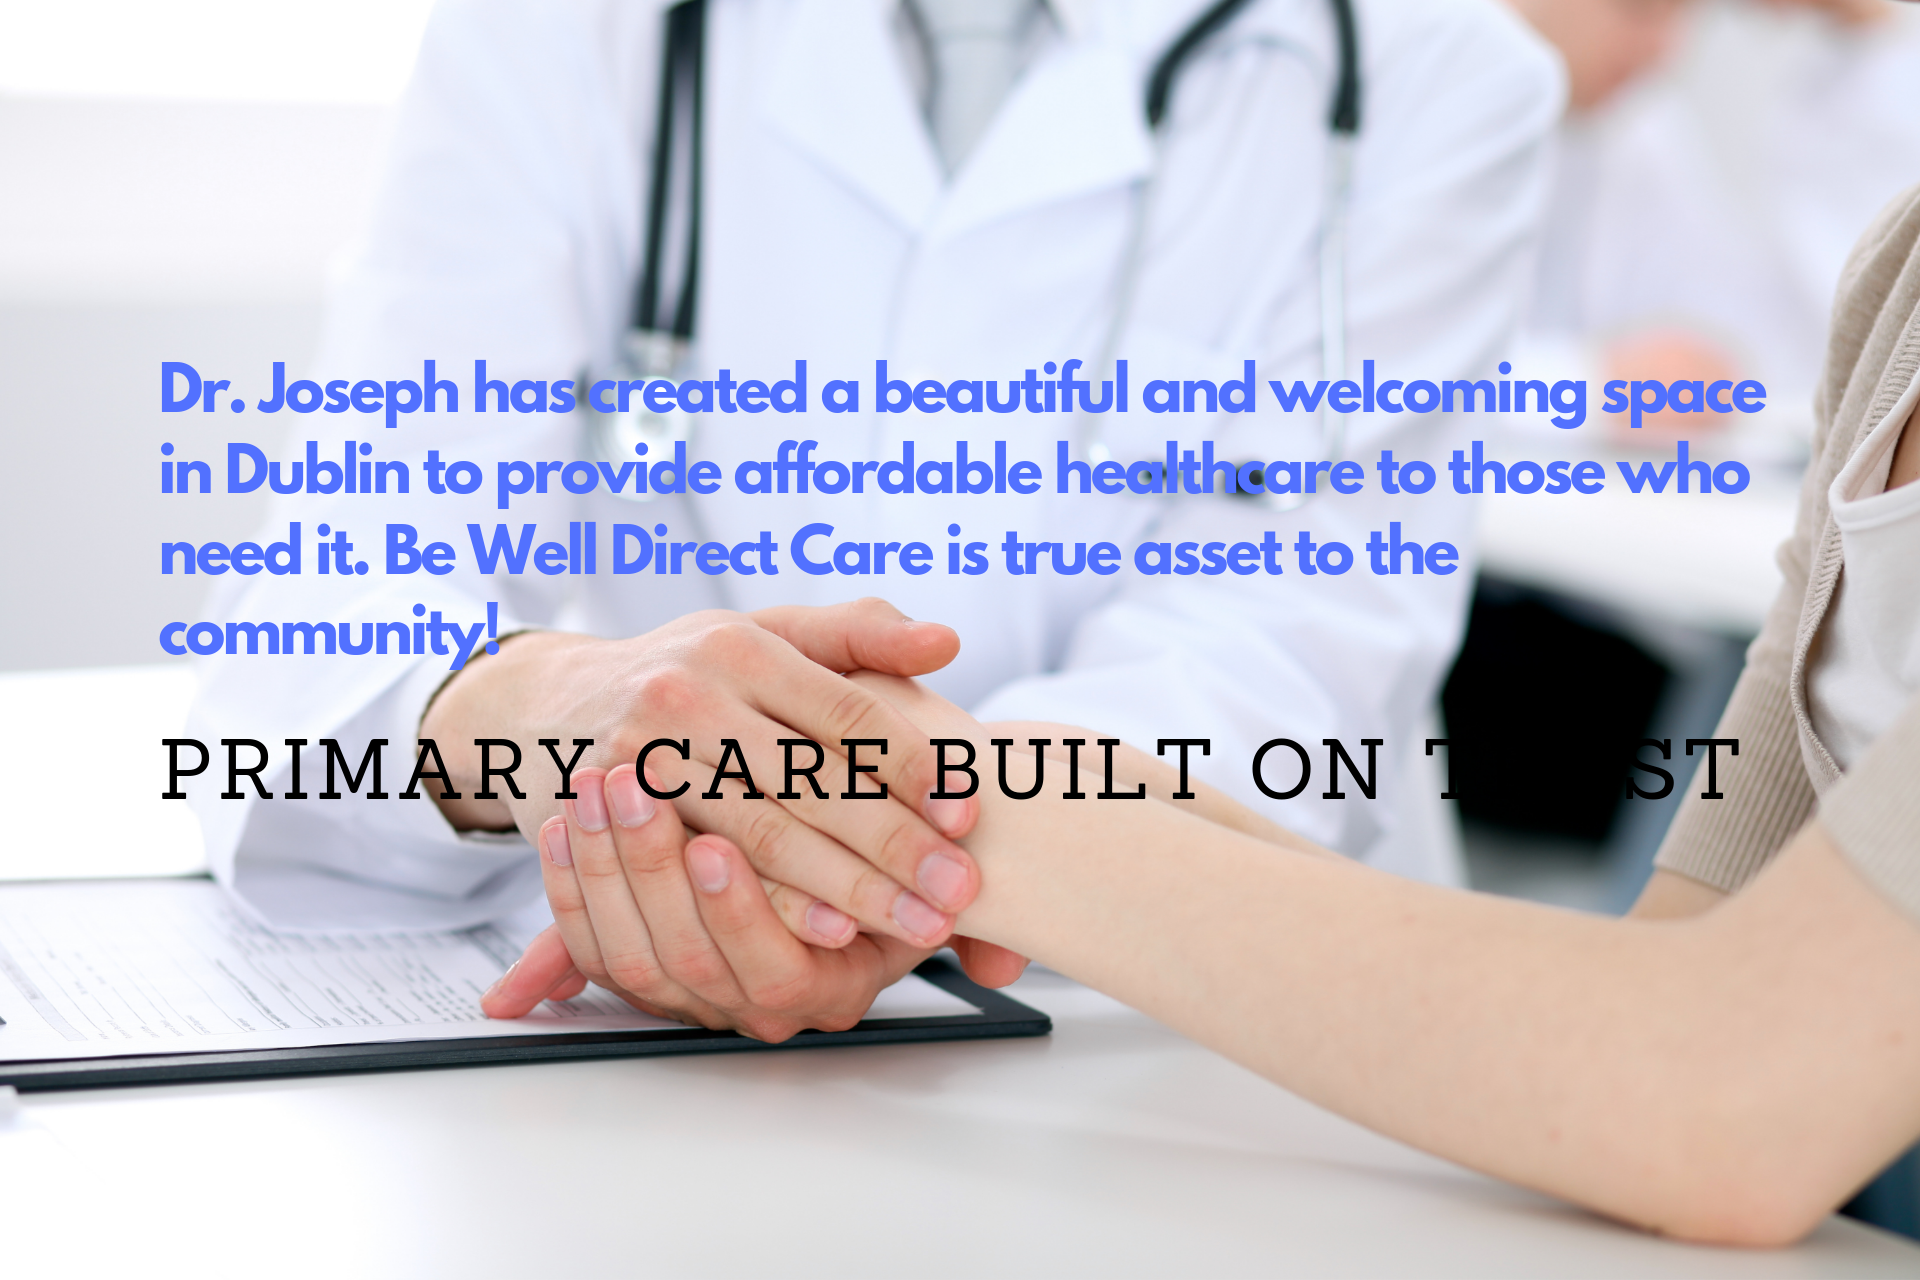 Copy of Be Well Direct Care (3).png